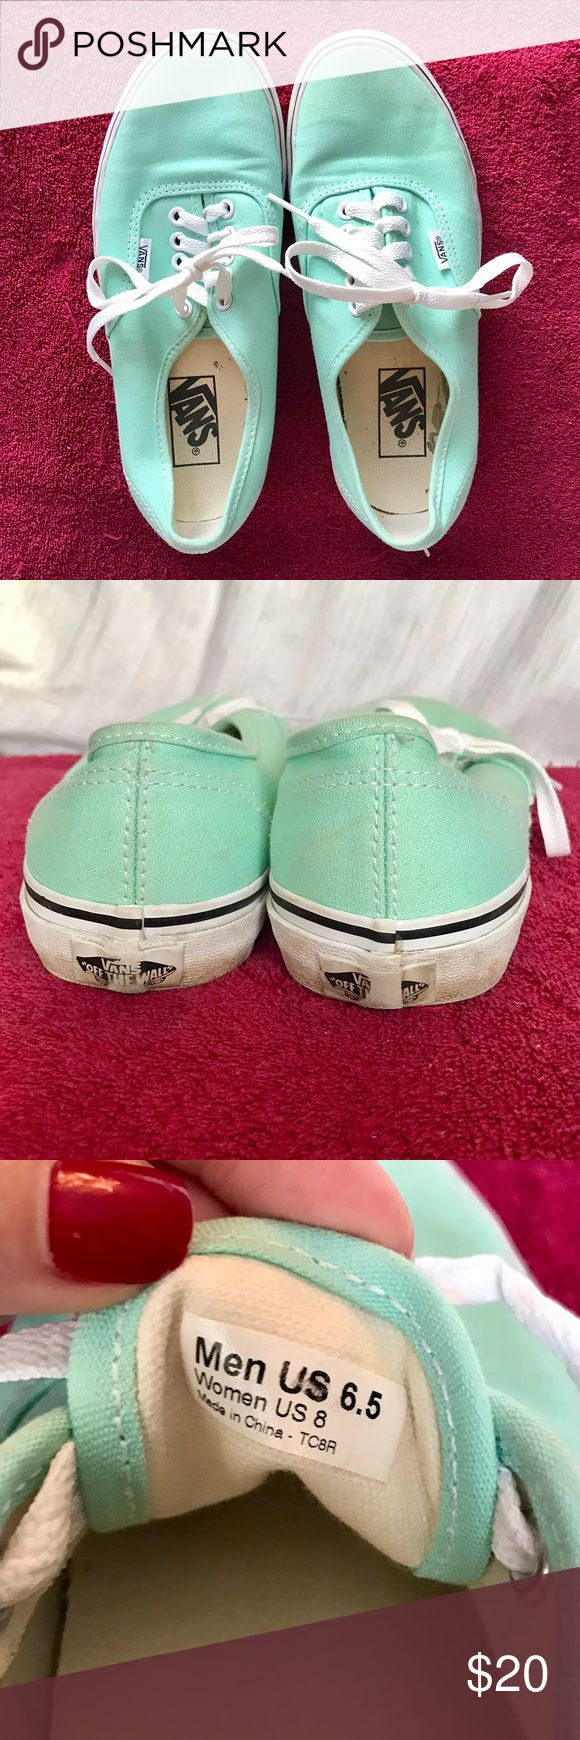 Mint Green Vans Authentic shoes 💚 Gently used! There are marks around the rim of the shoes. But in great condition! Please let me know if you have any questions! Vans Shoes Sneakers